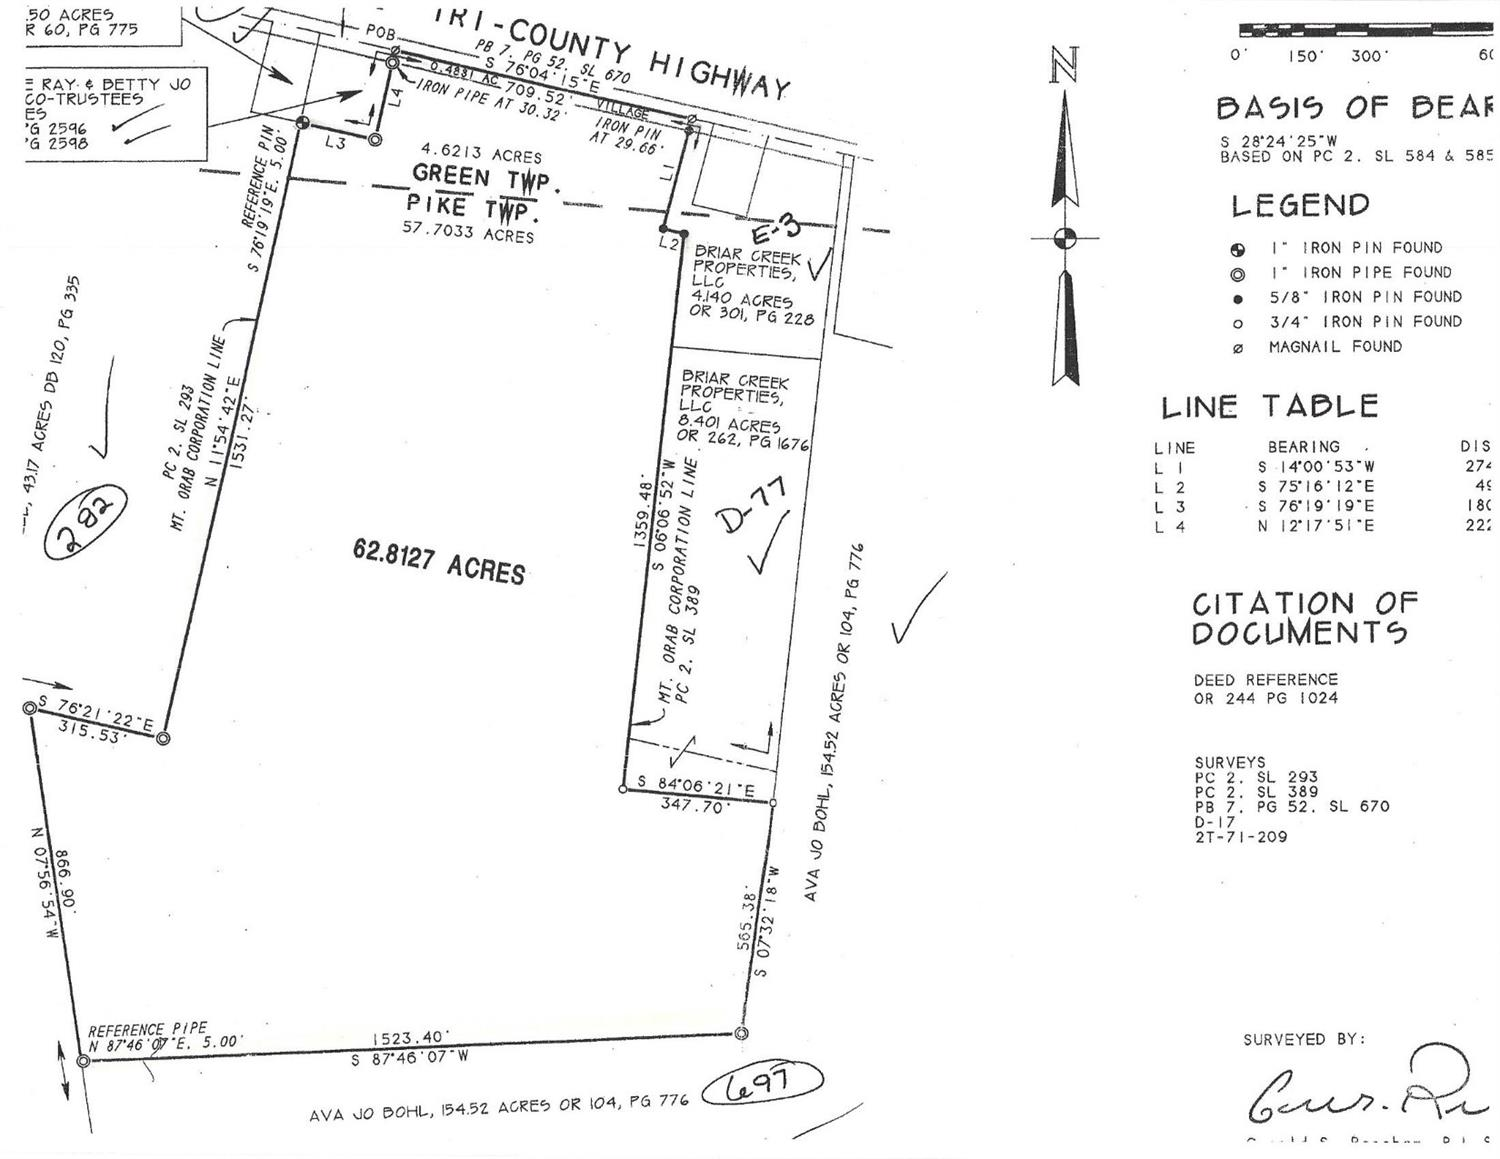 0 62.81ac Tri County Hwy Pike Twp., OH